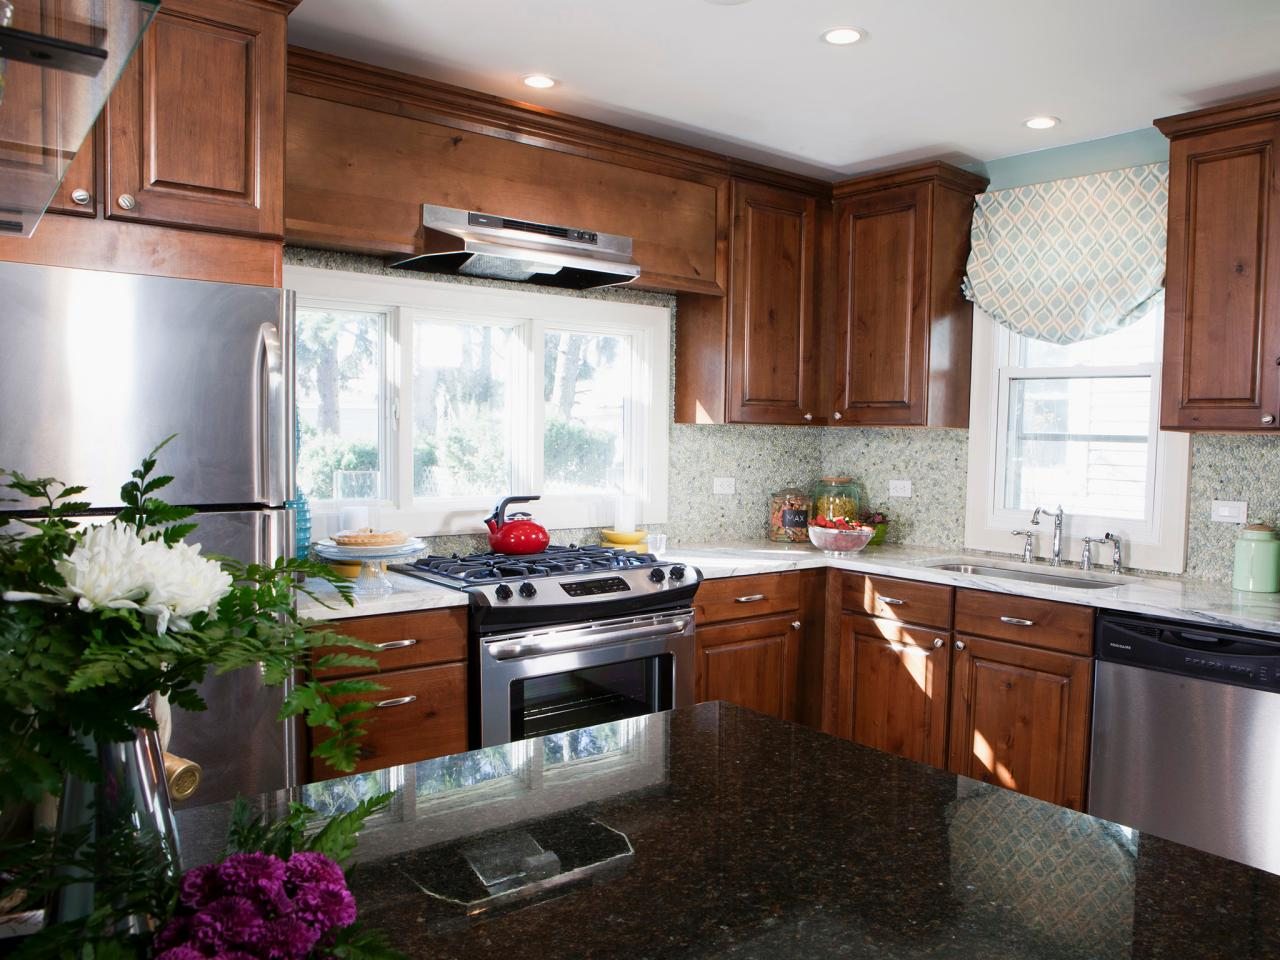 Formica countertops hgtv for Formica kitchen designs